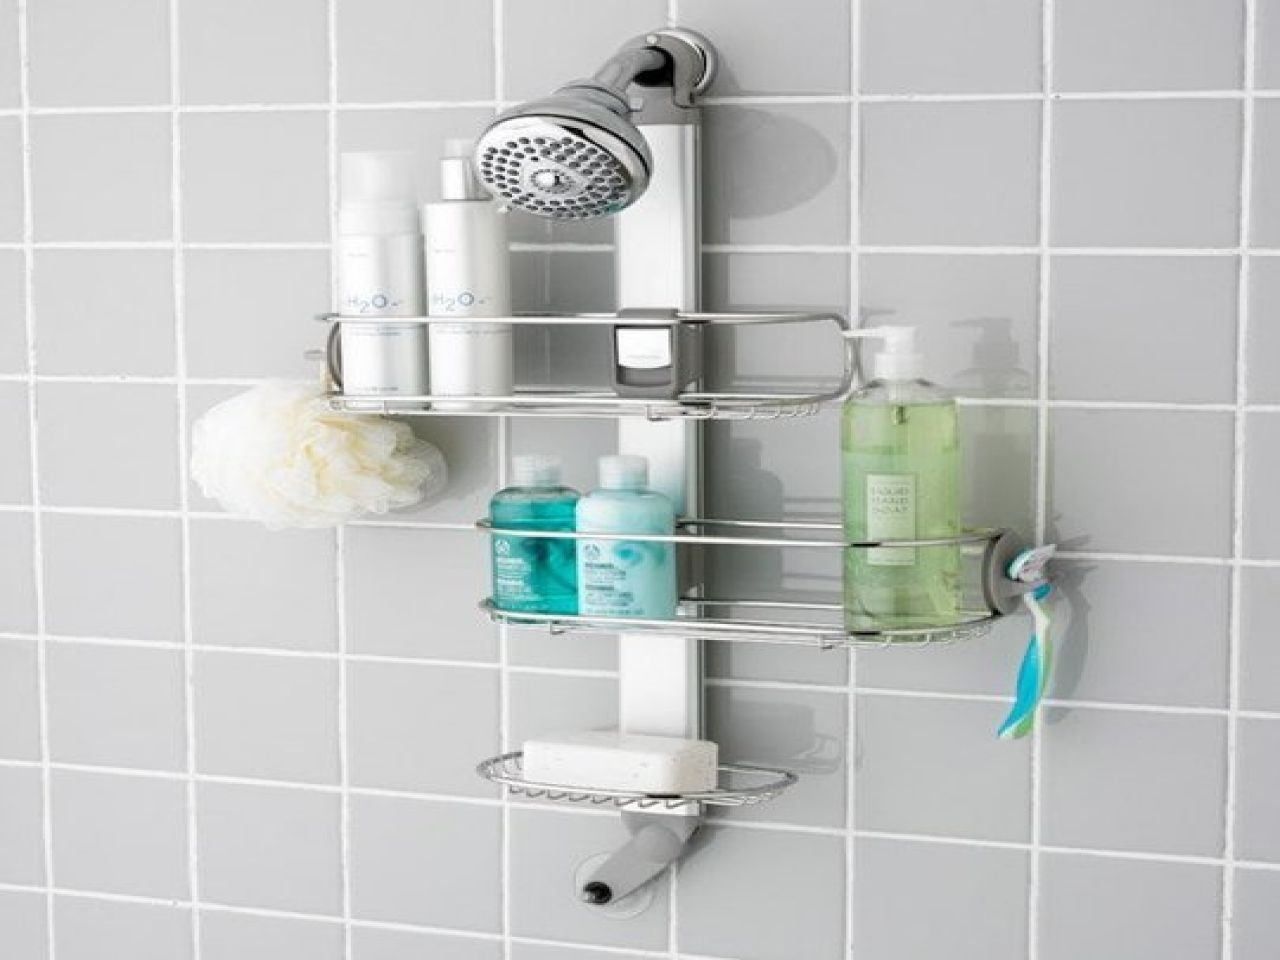 shower caddy bed bath and beyond bathroom buy large from amp ...